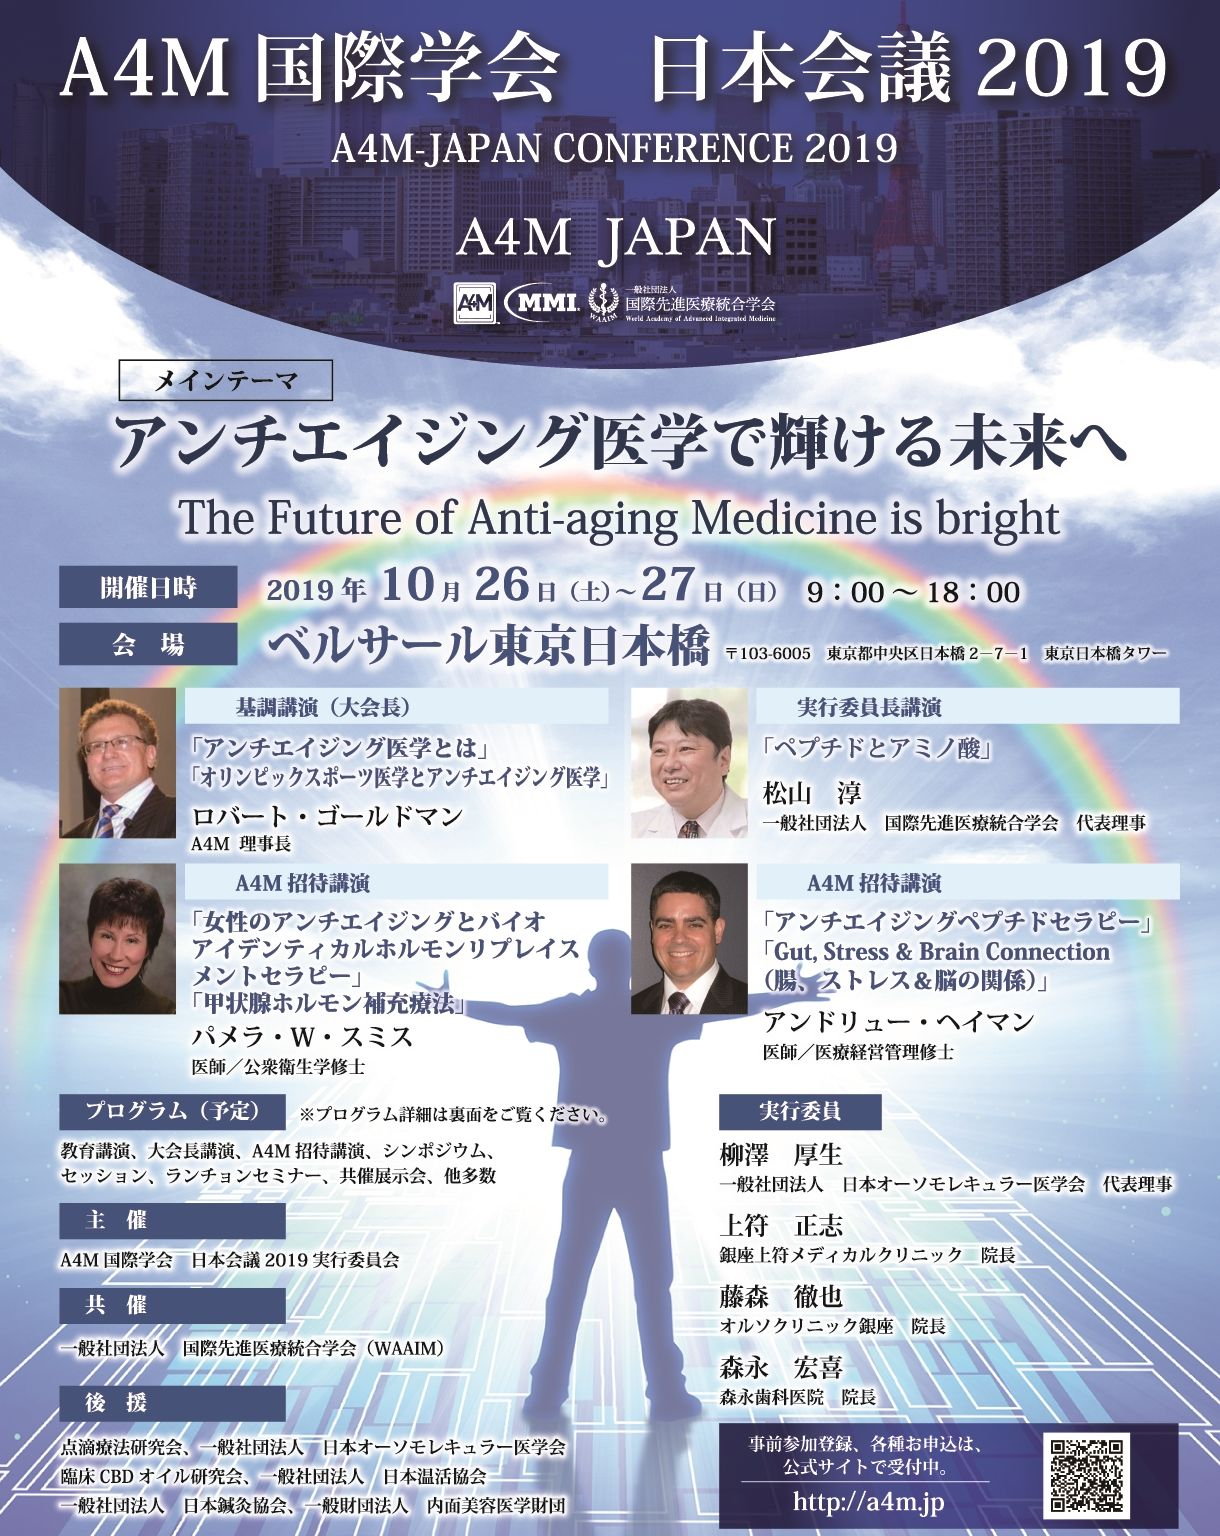 A4M International Conference Japan Conference 2019 Palestra Especial